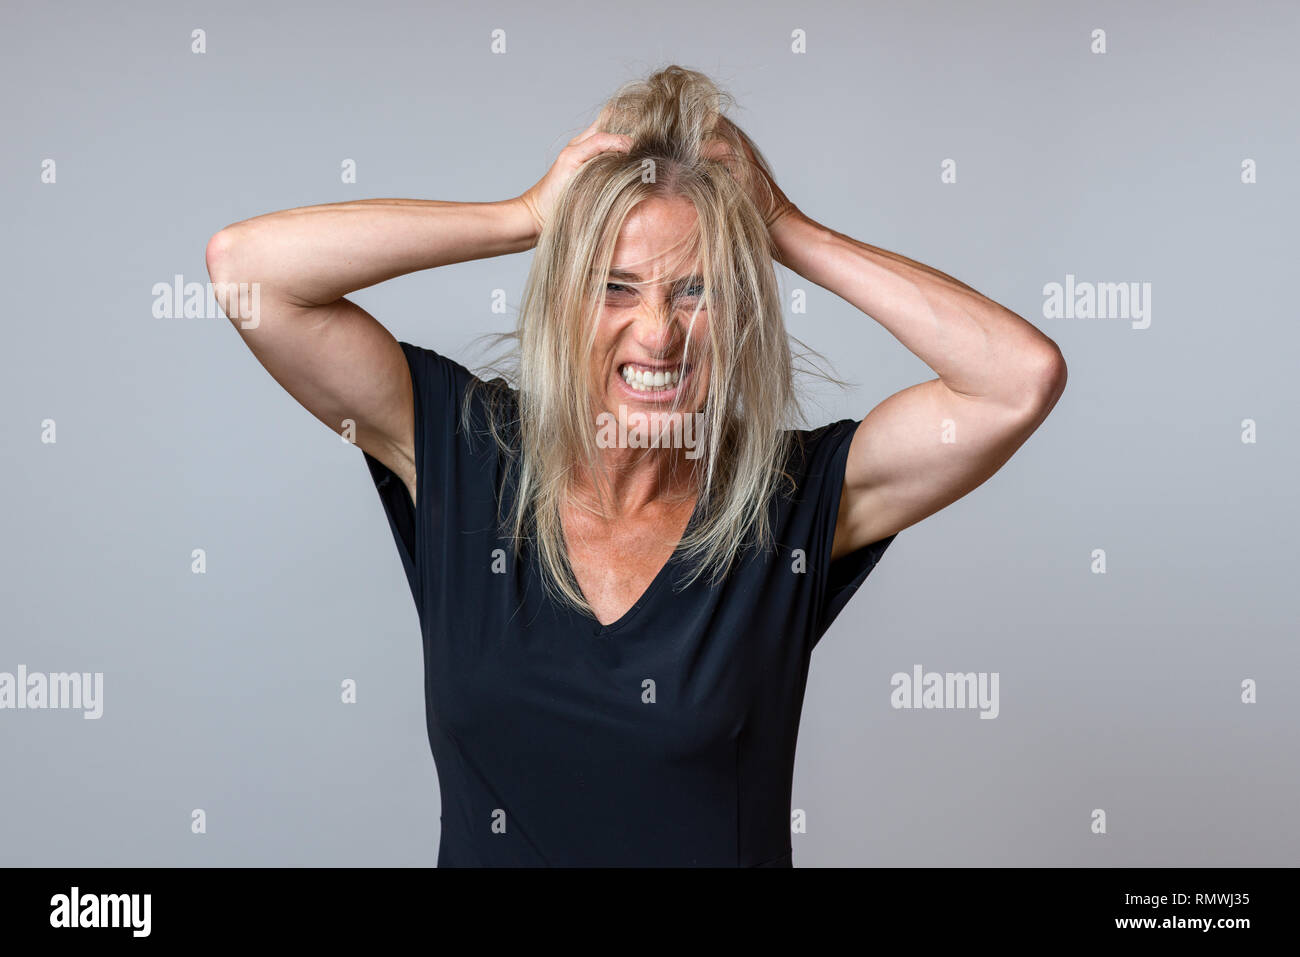 Frustrated woman tearing at her long blond hair, gnashing her teeth and snarling at the camera over grey - Stock Image